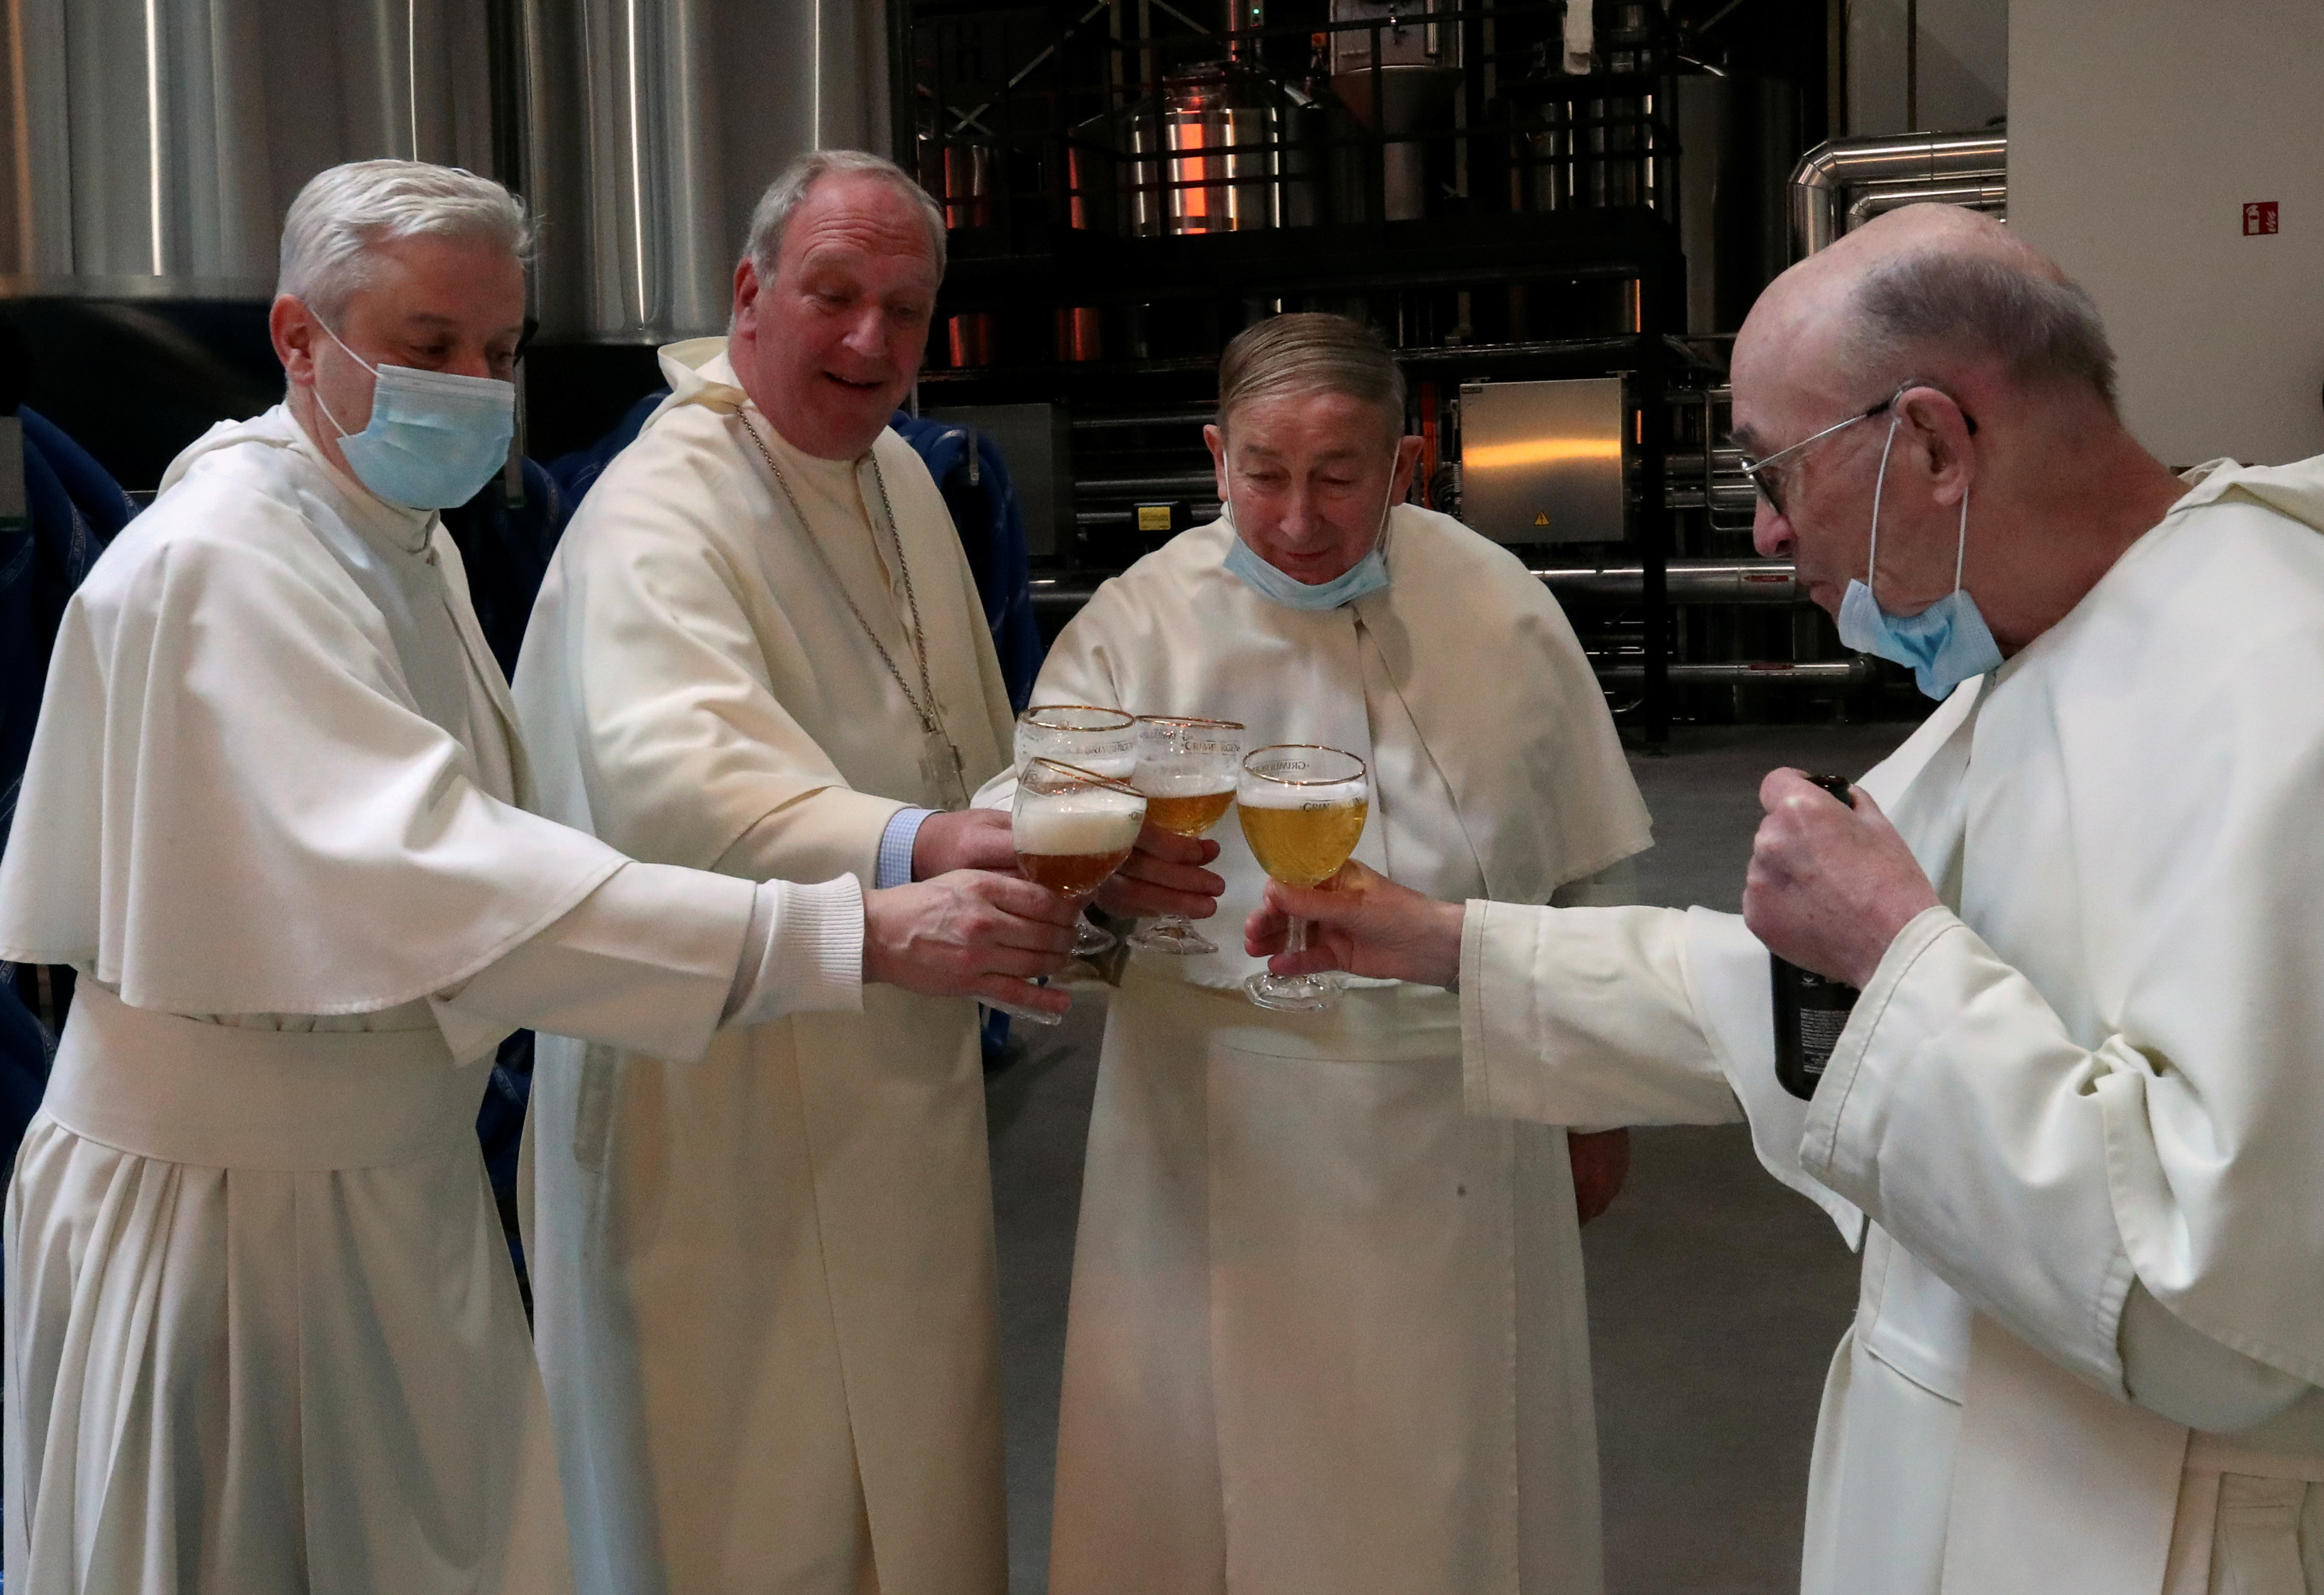 Belgian abbey raises brewery from ashes after 200 years